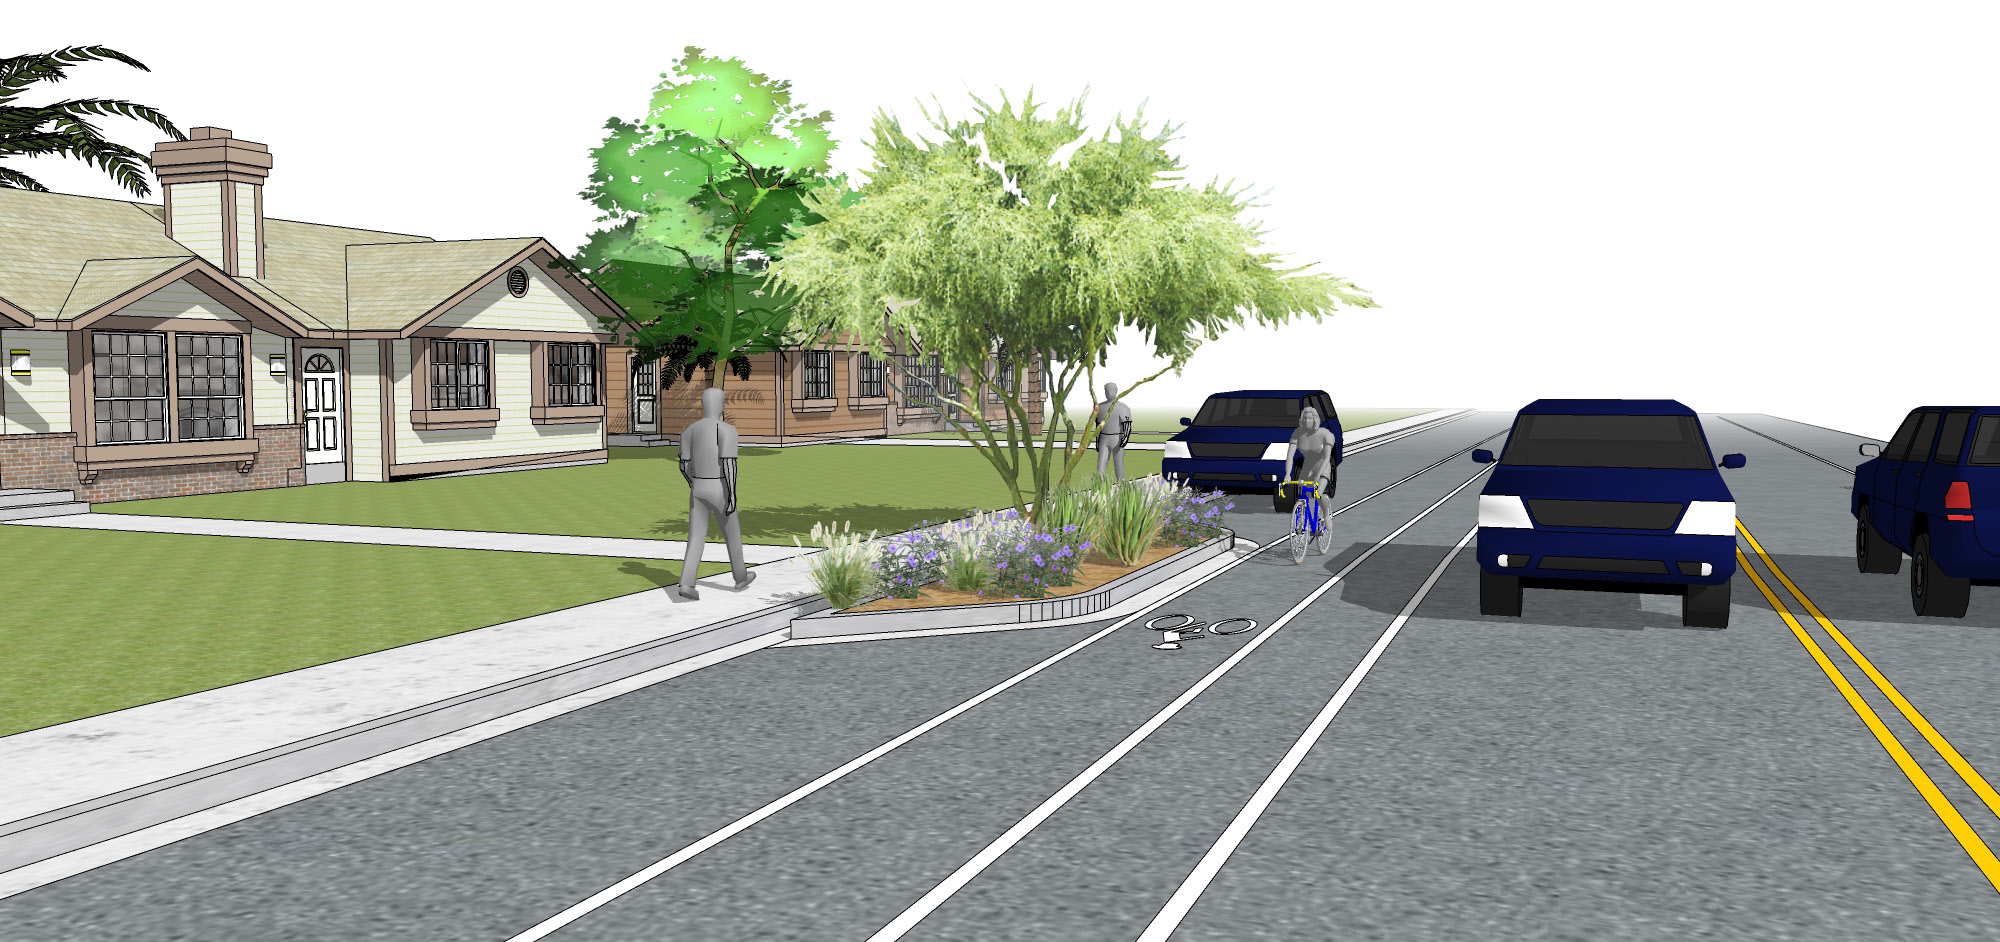 ALAMEDA REVISED BUMPOUTS STRIPING